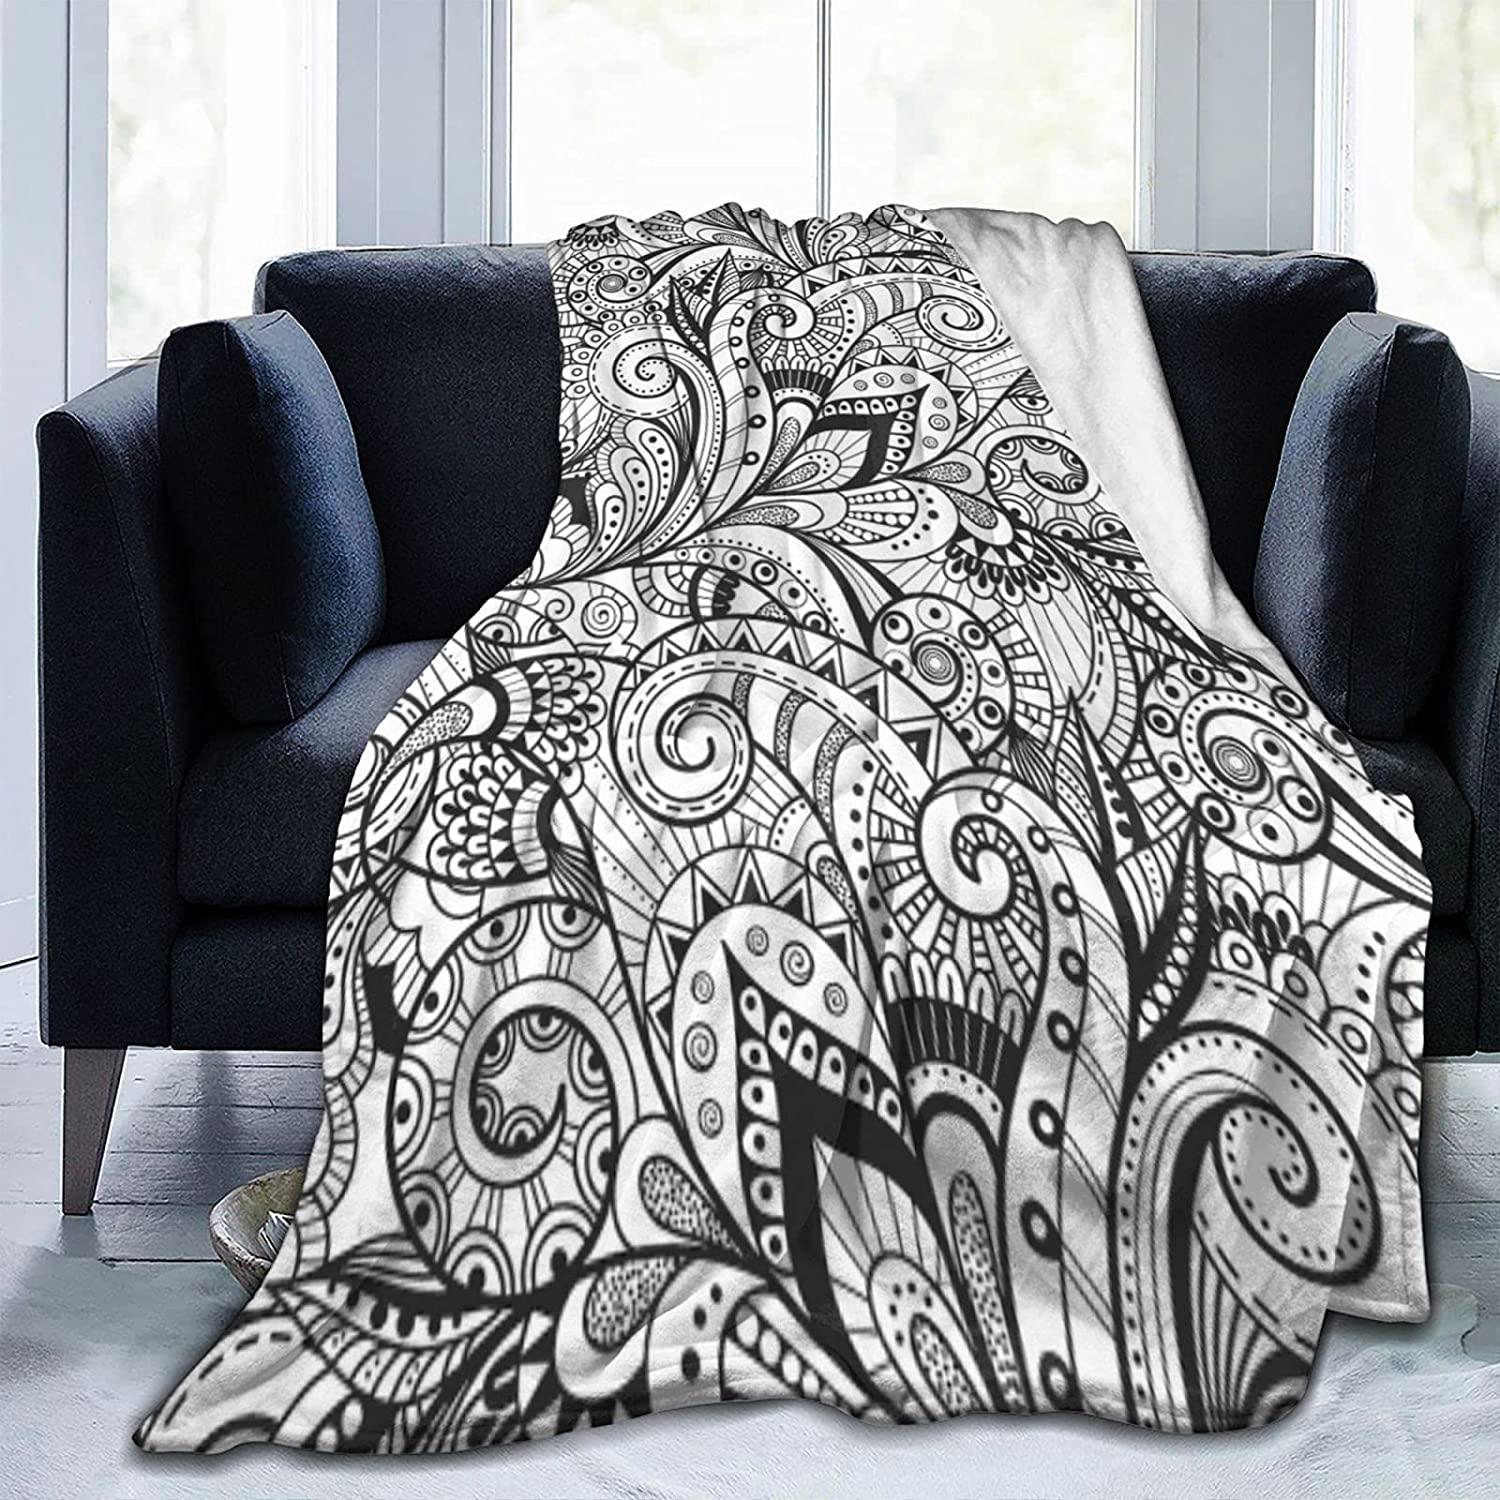 50x60 inch Mandala Blanket Fixed price for sale Warm Multicolor Thro Bedsure Max 54% OFF Blankets